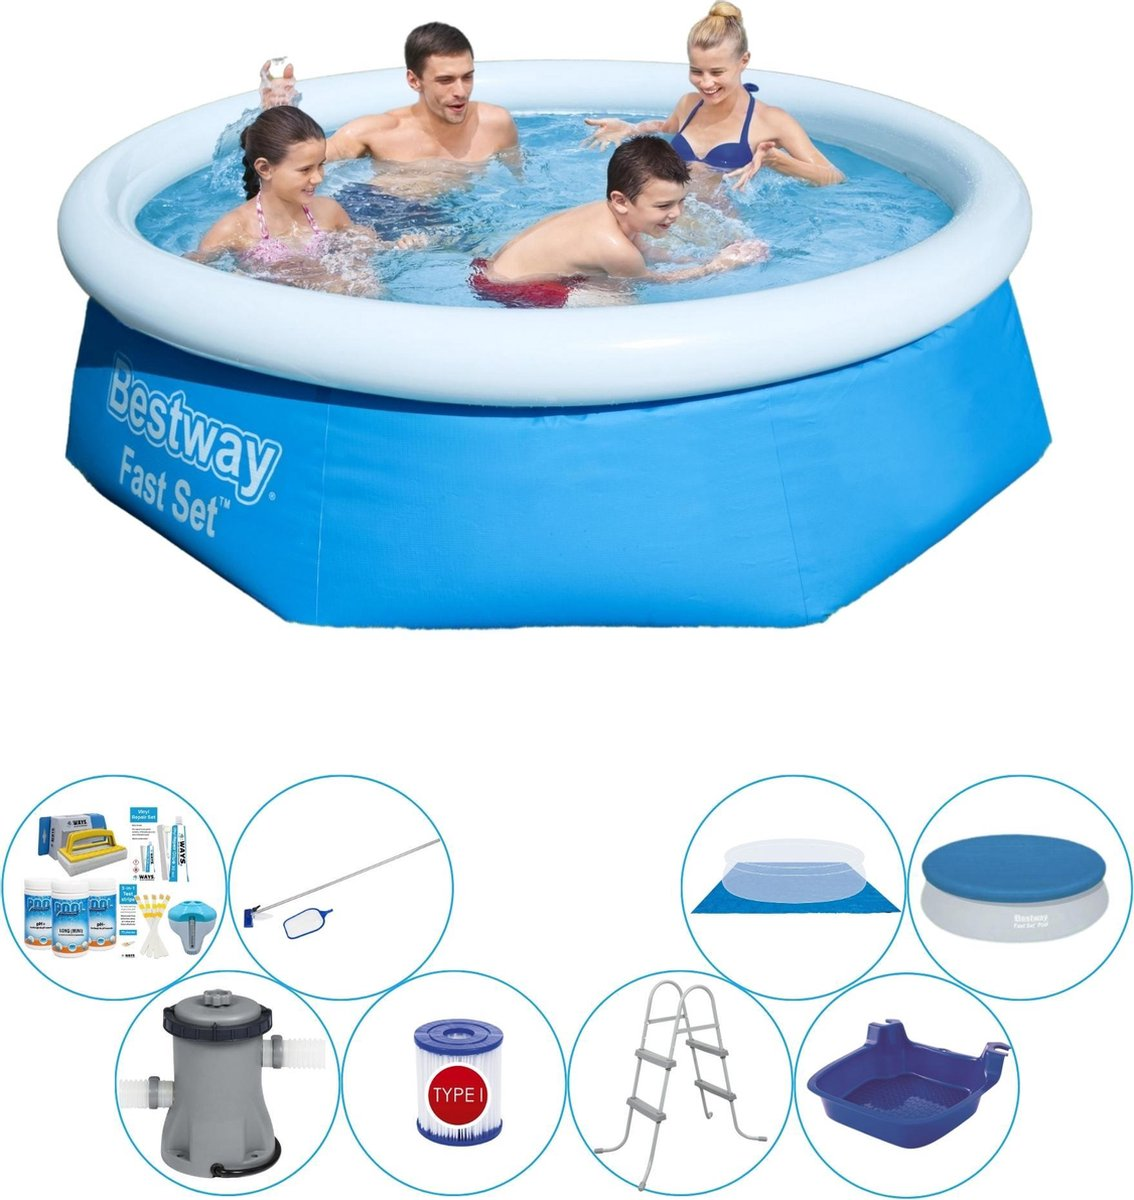 Bestway Fast Set Rond 244x66 cm - Zwembad Inclusief Accessoires